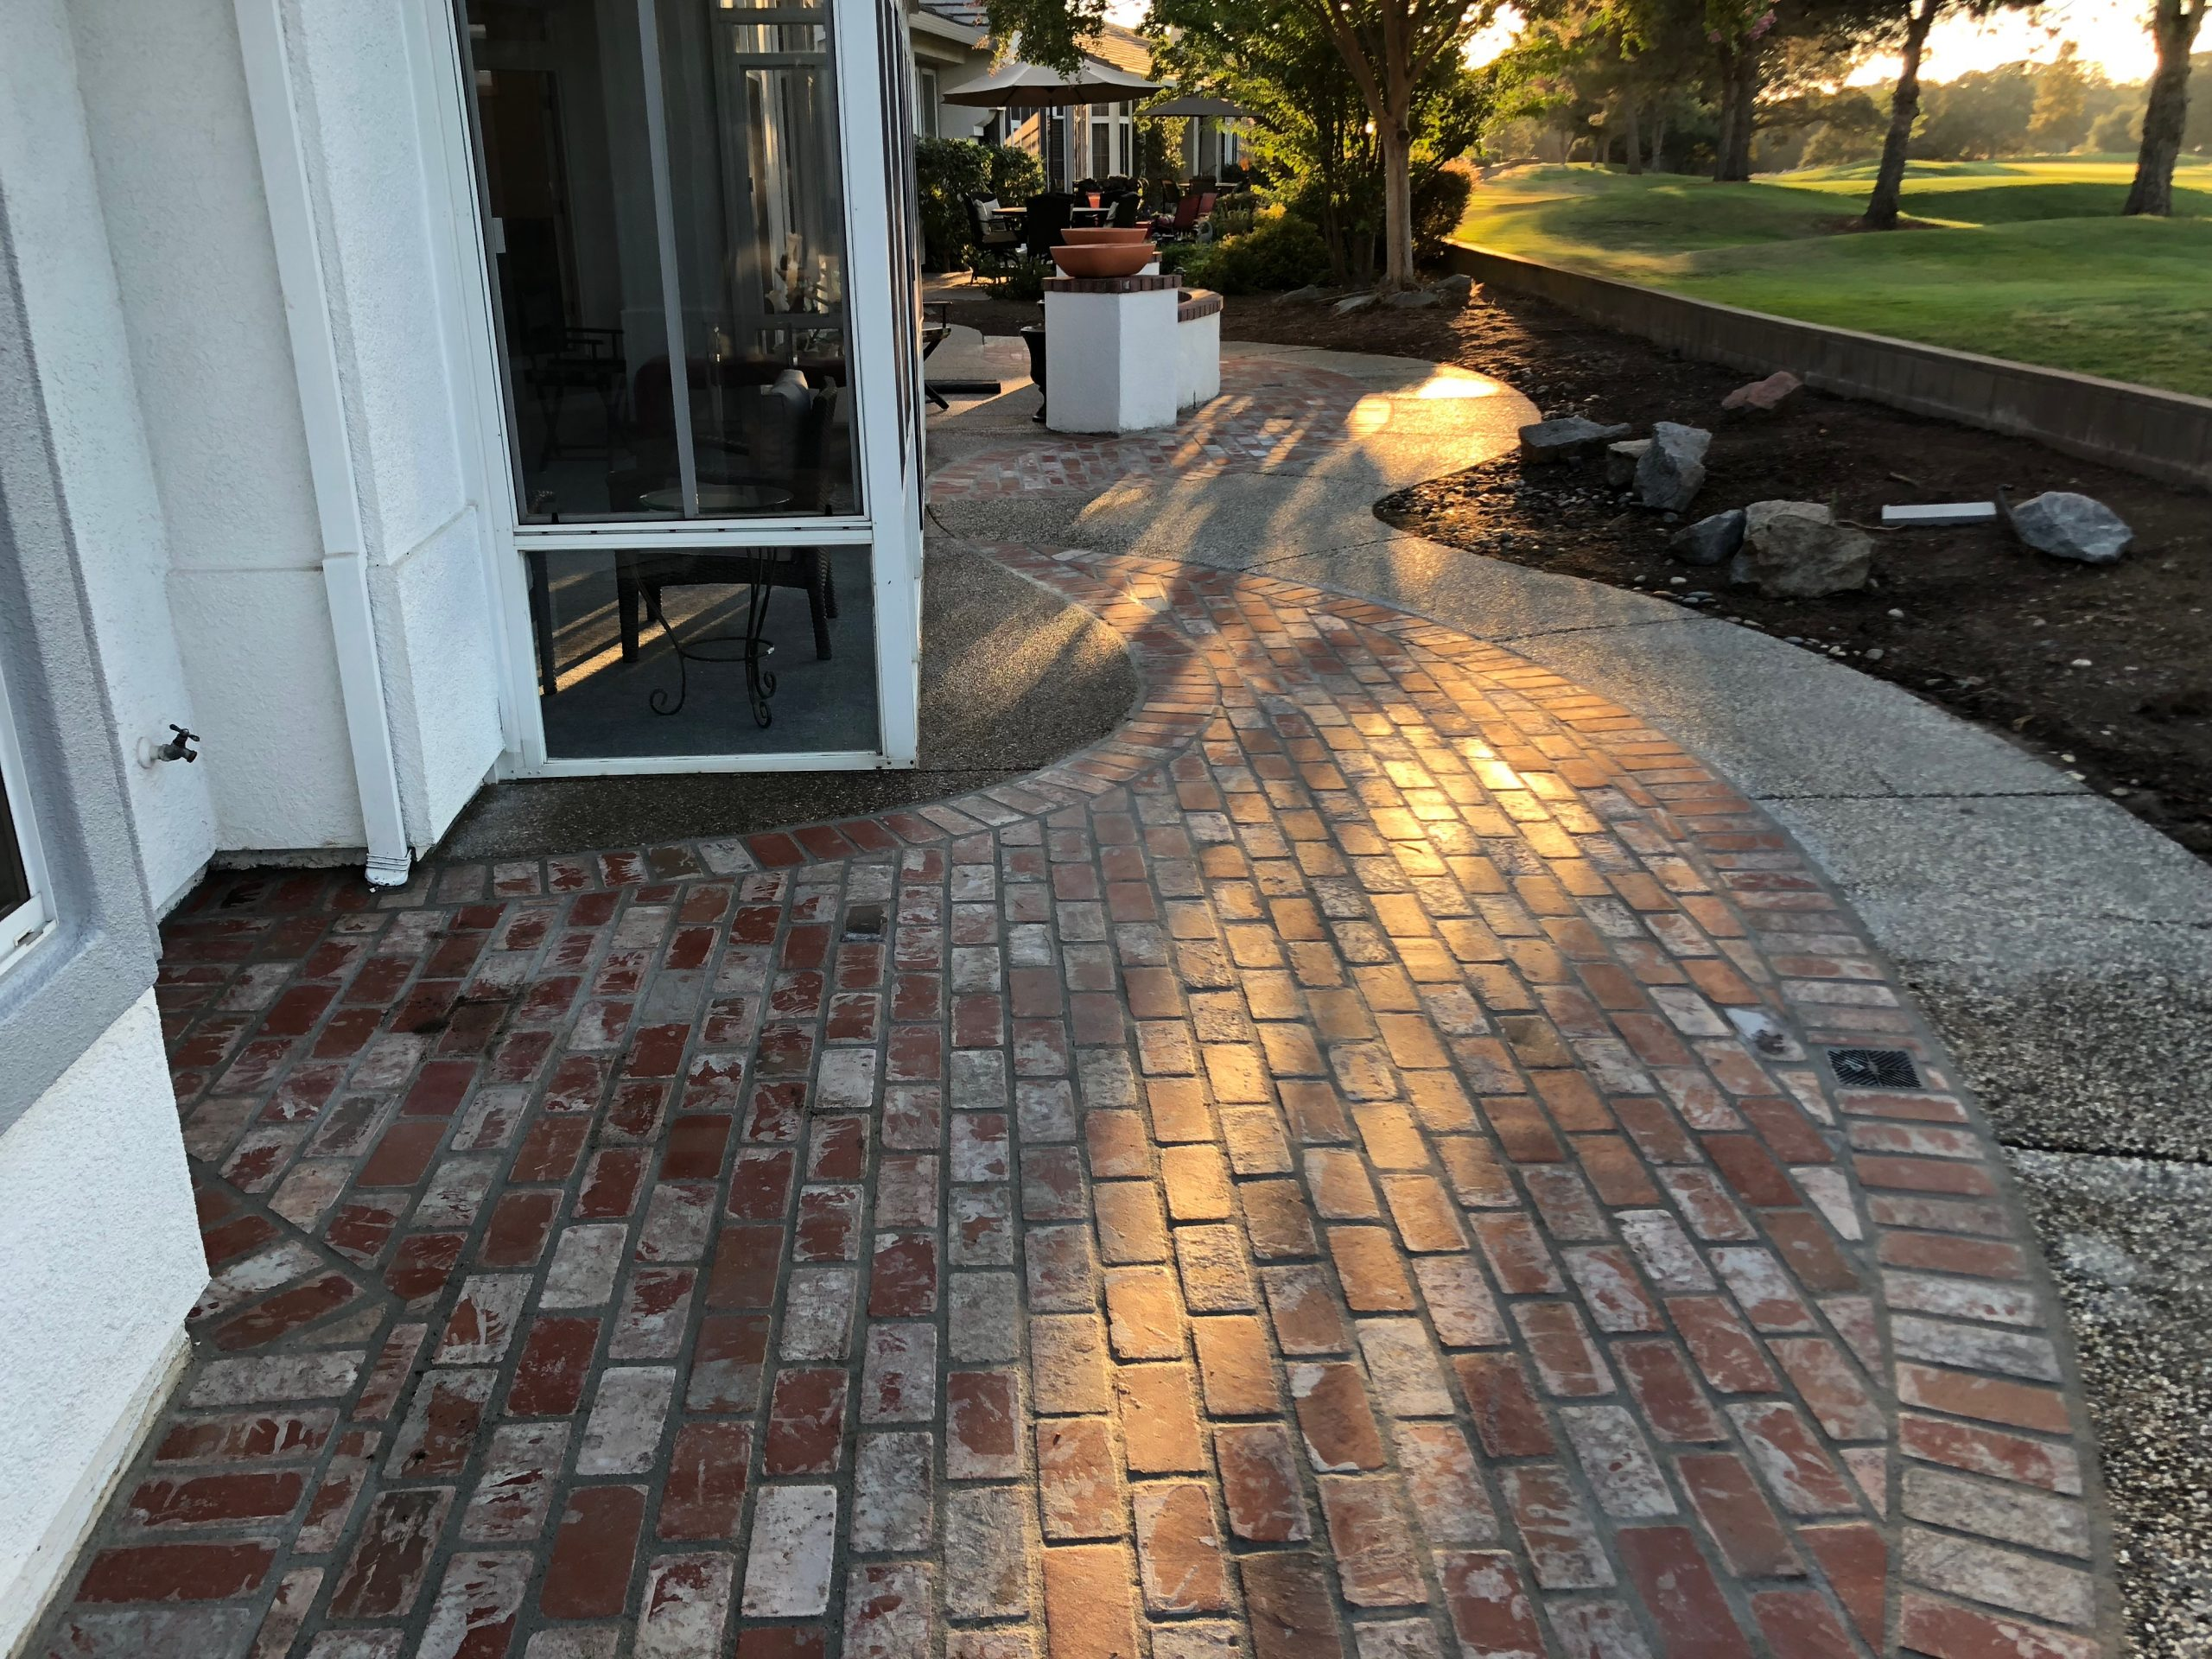 this image shows brick pavers in Simi Valley